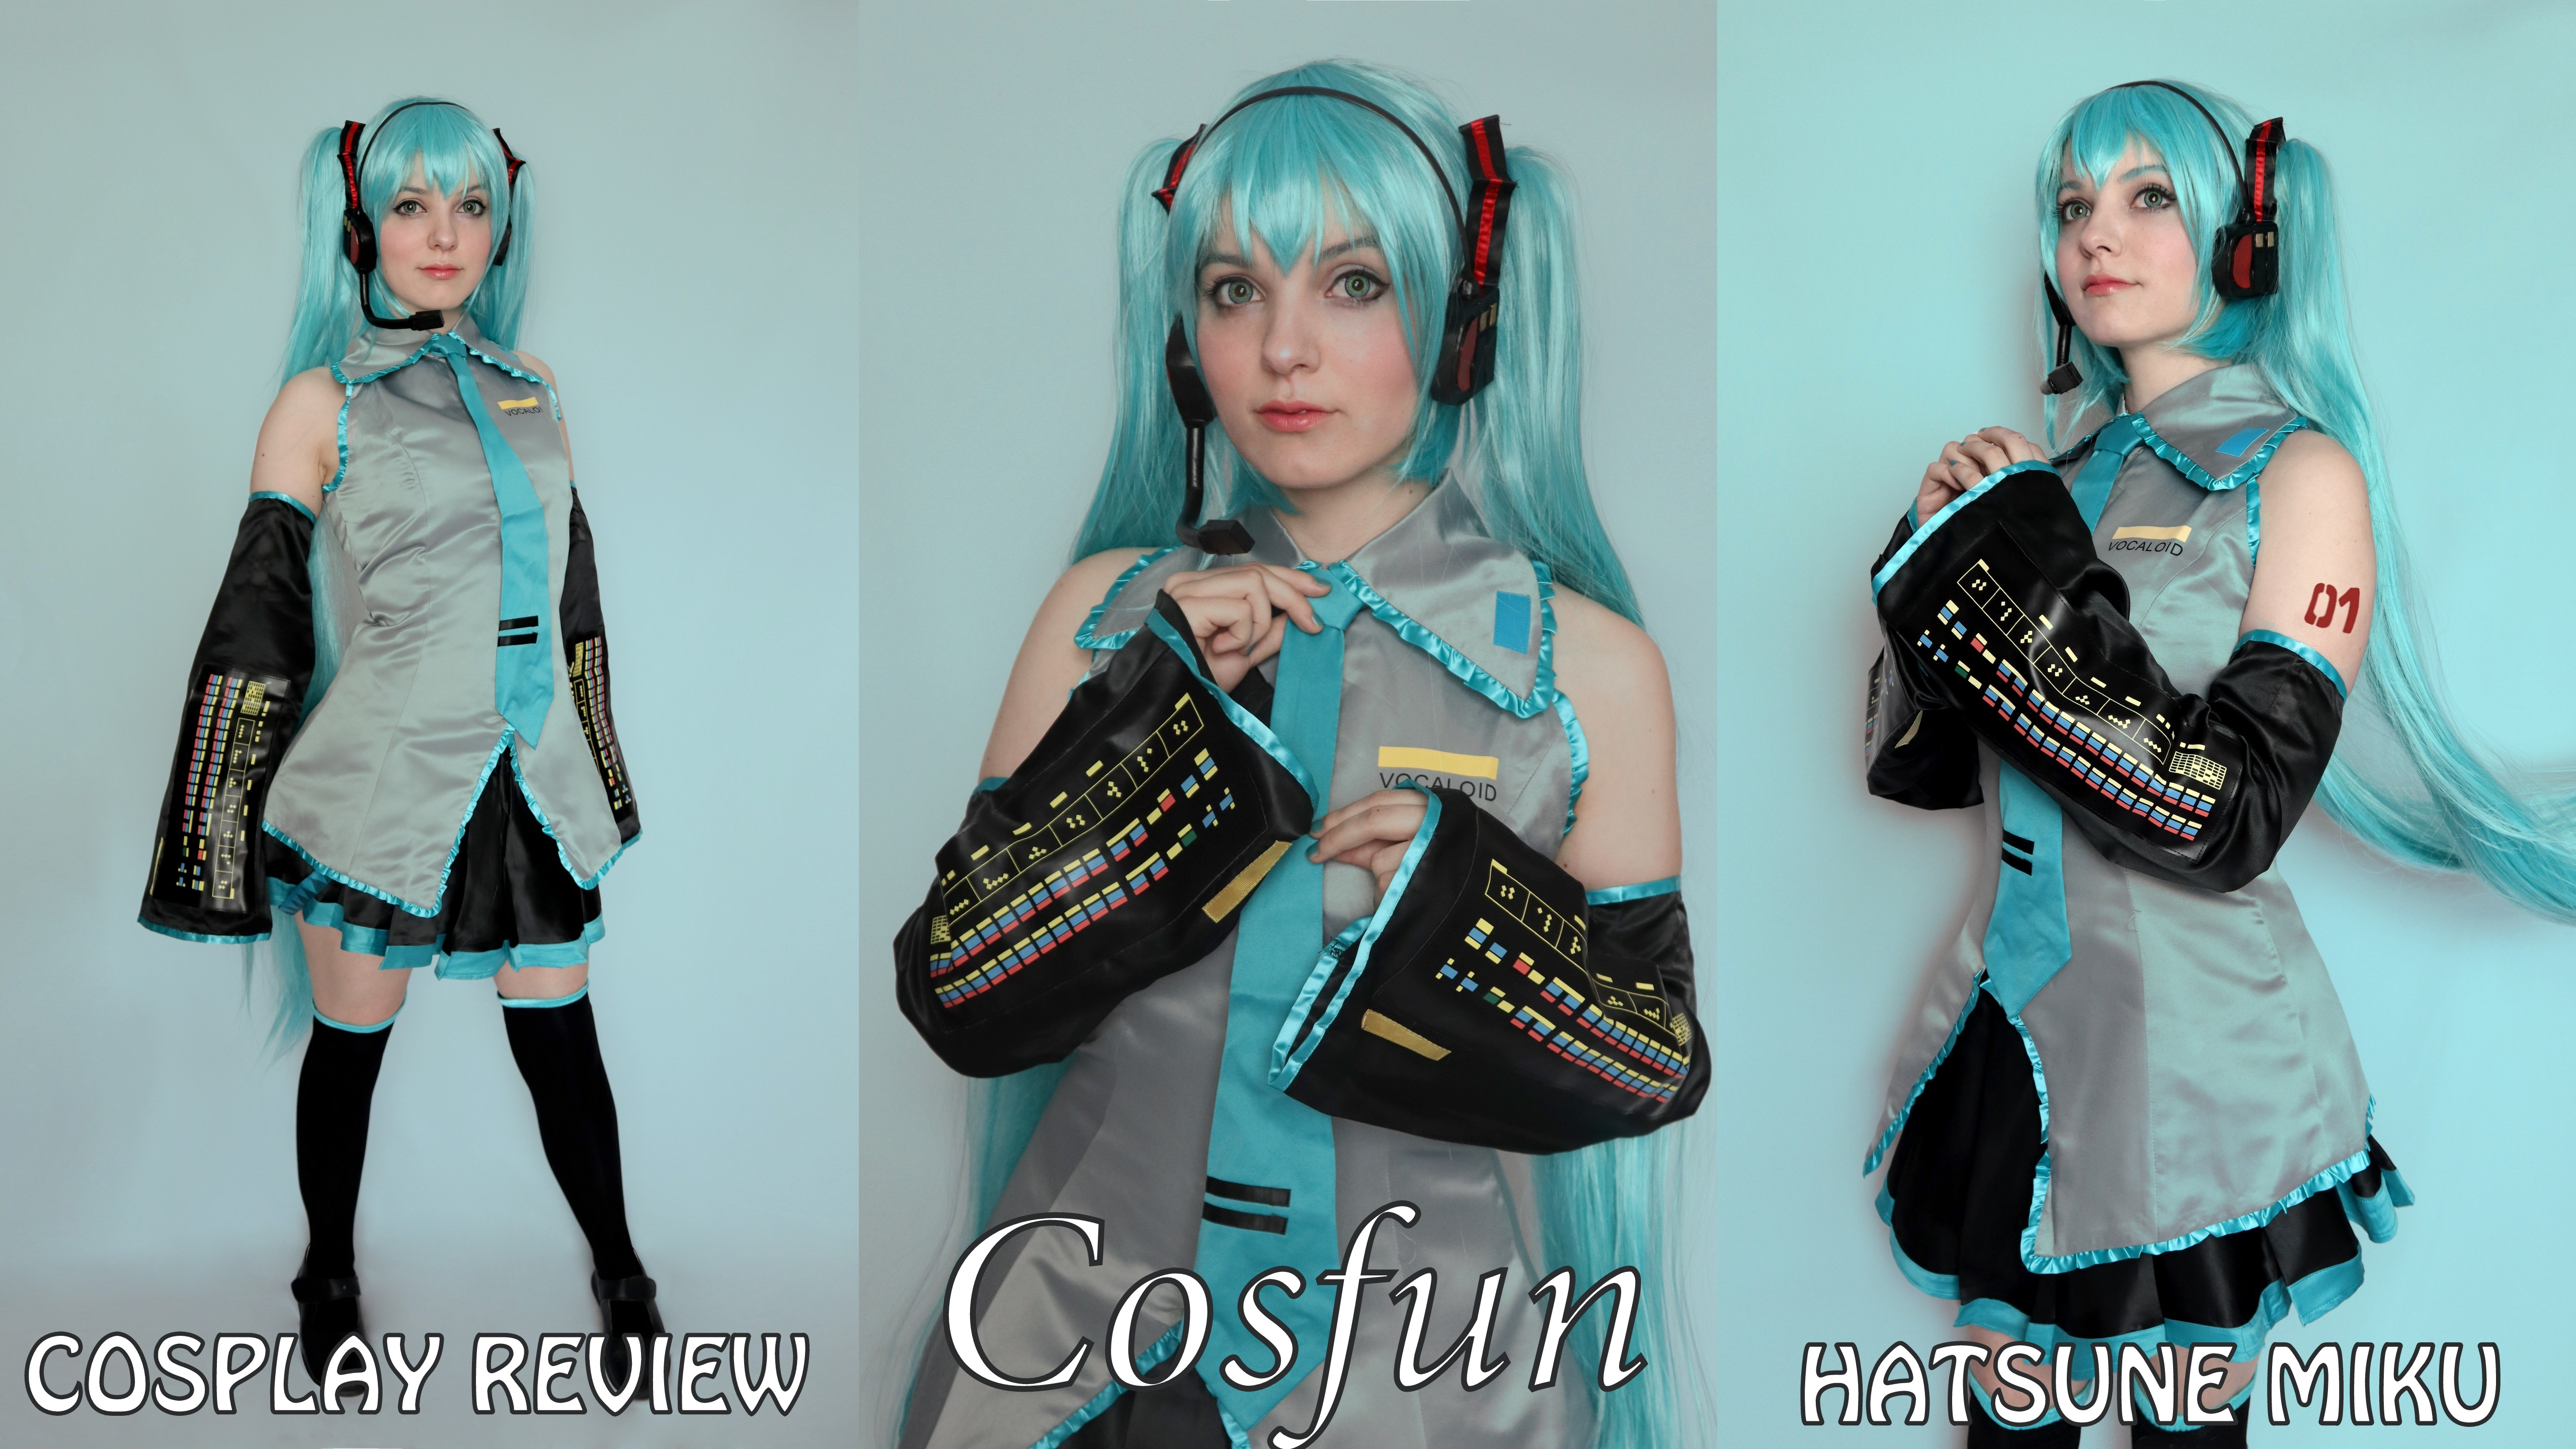 Cosplay review: Hatsune Miku (Vocaloid) from Cosfun